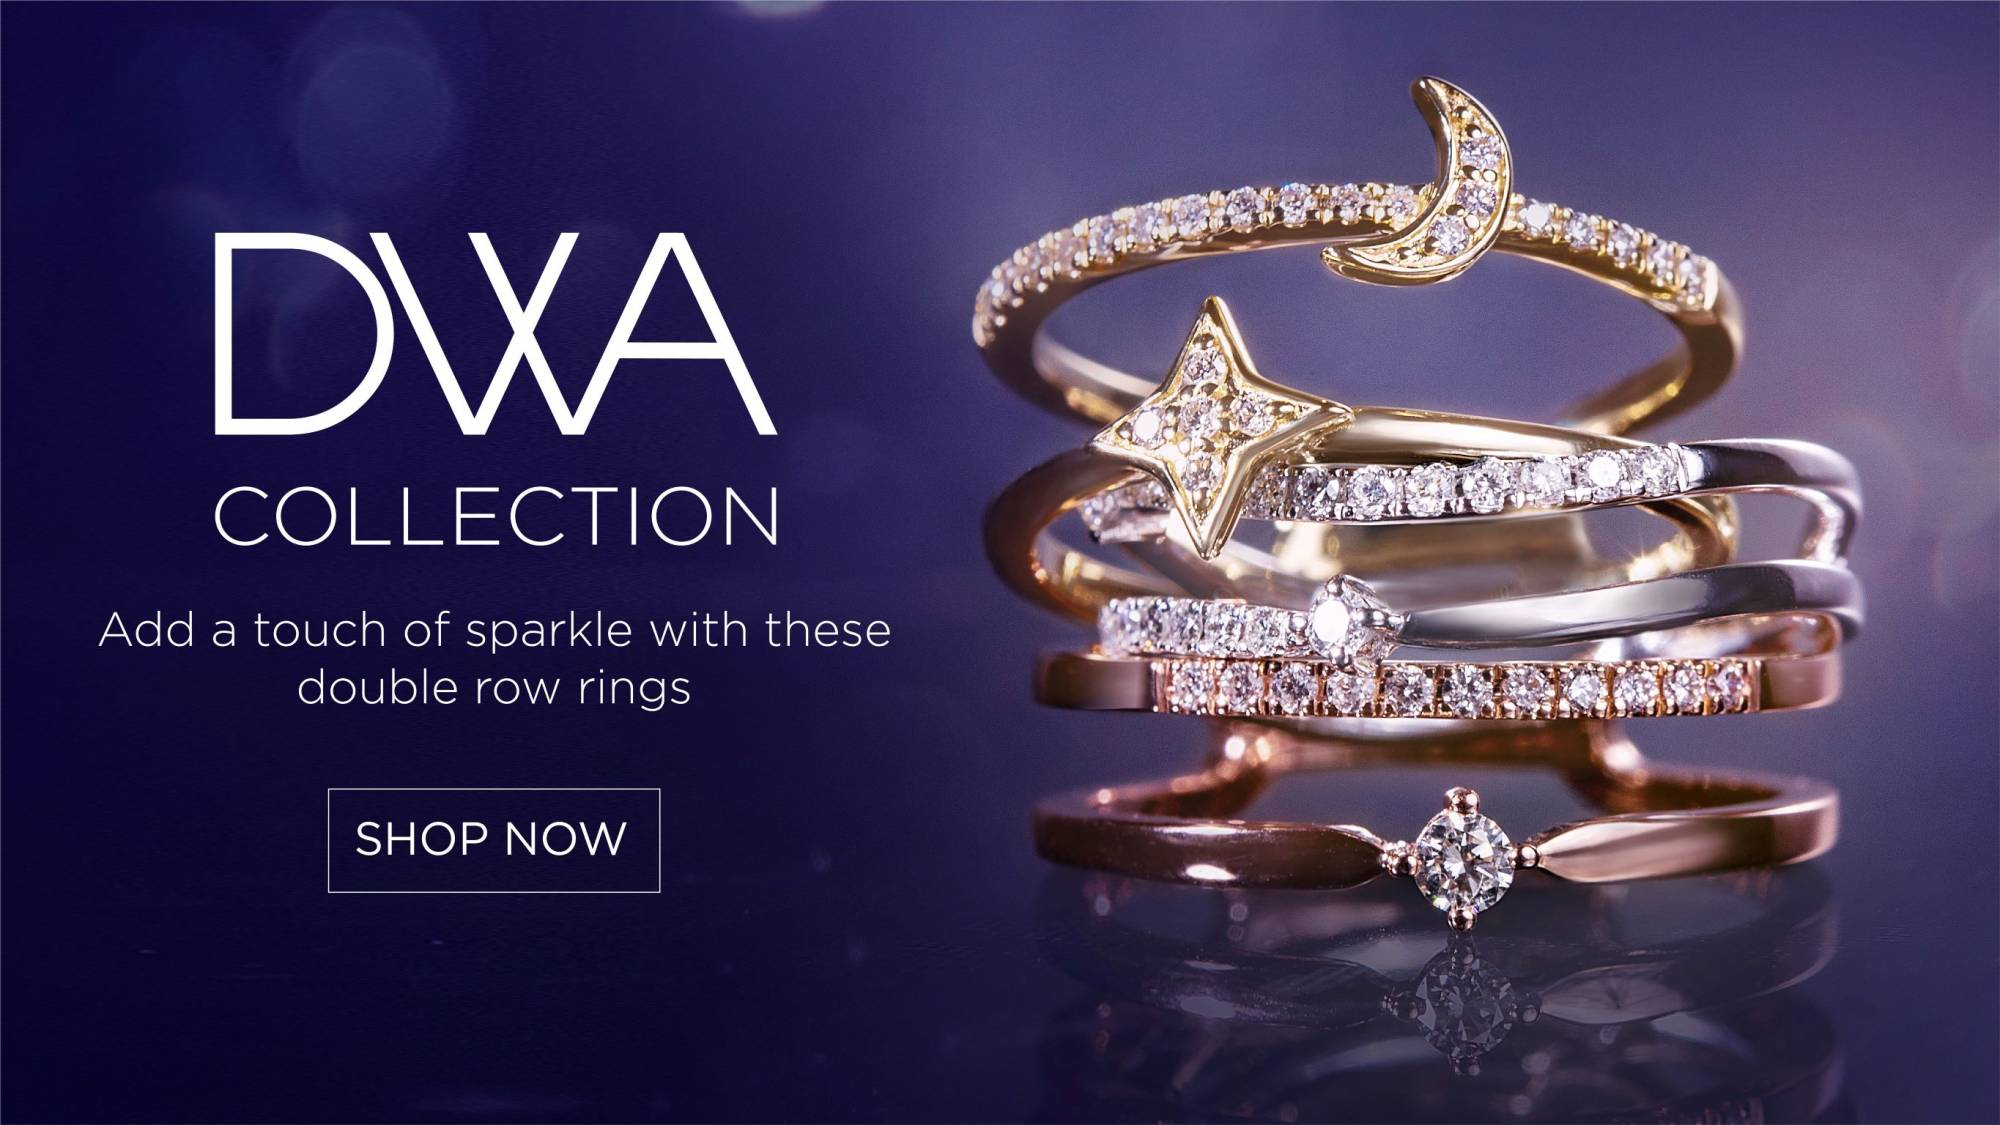 Dwa Collection